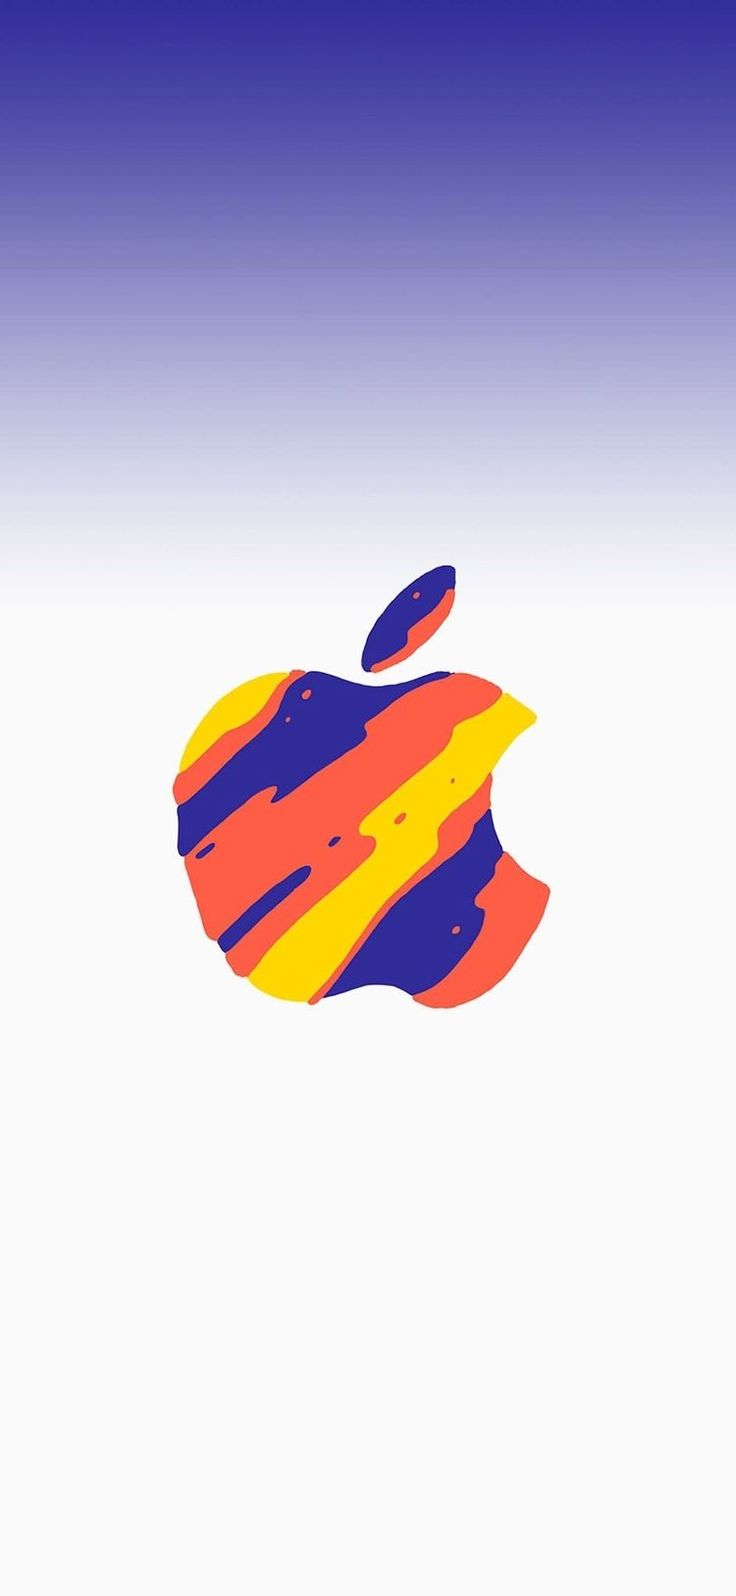 Pin by privaterayan on Sick wallpapers in 2020 Apple